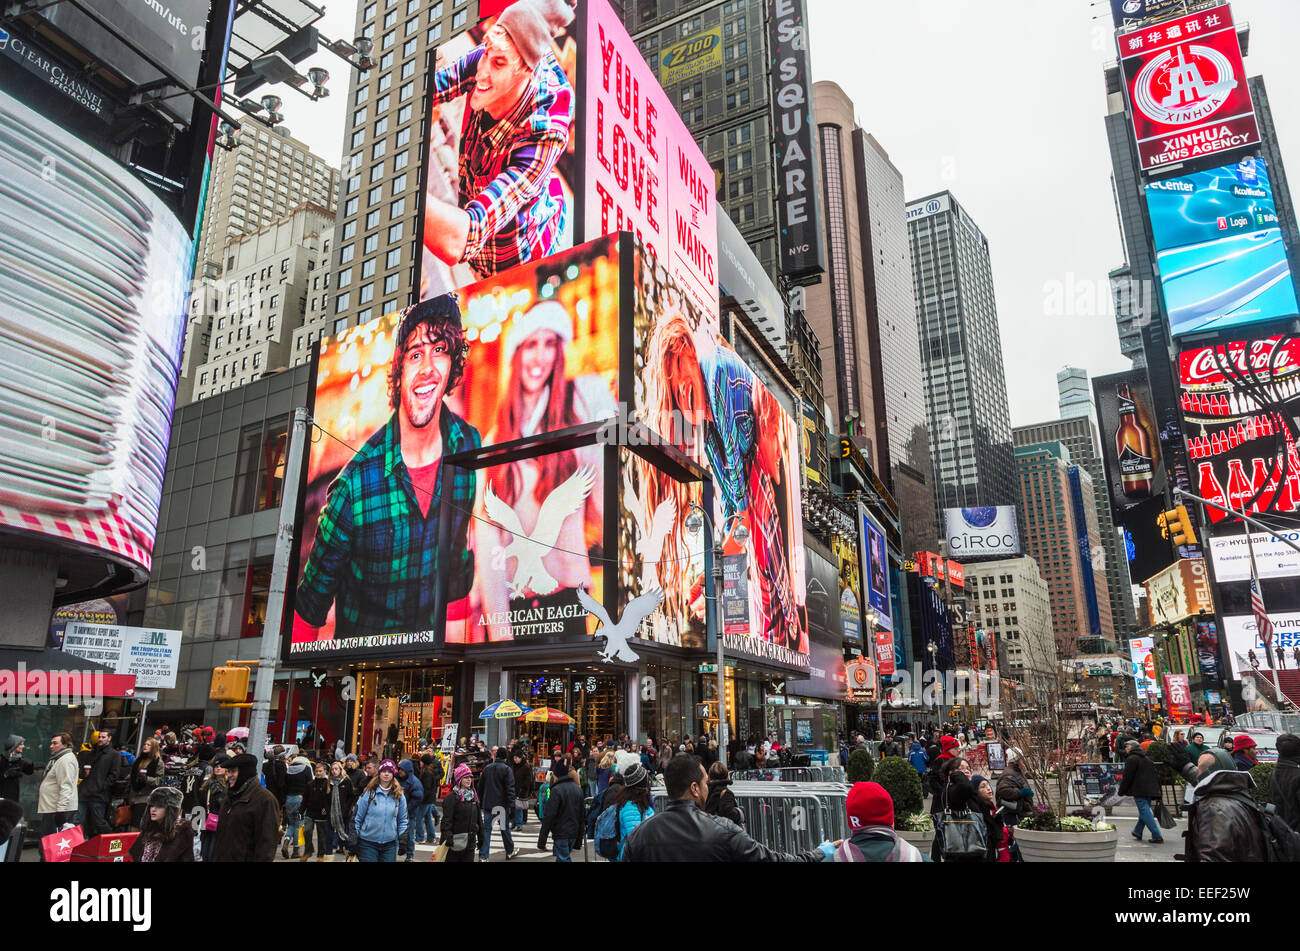 Times Square, New York, with brightly illuminated American Eagle Outfitters store and advertisements - Stock Image